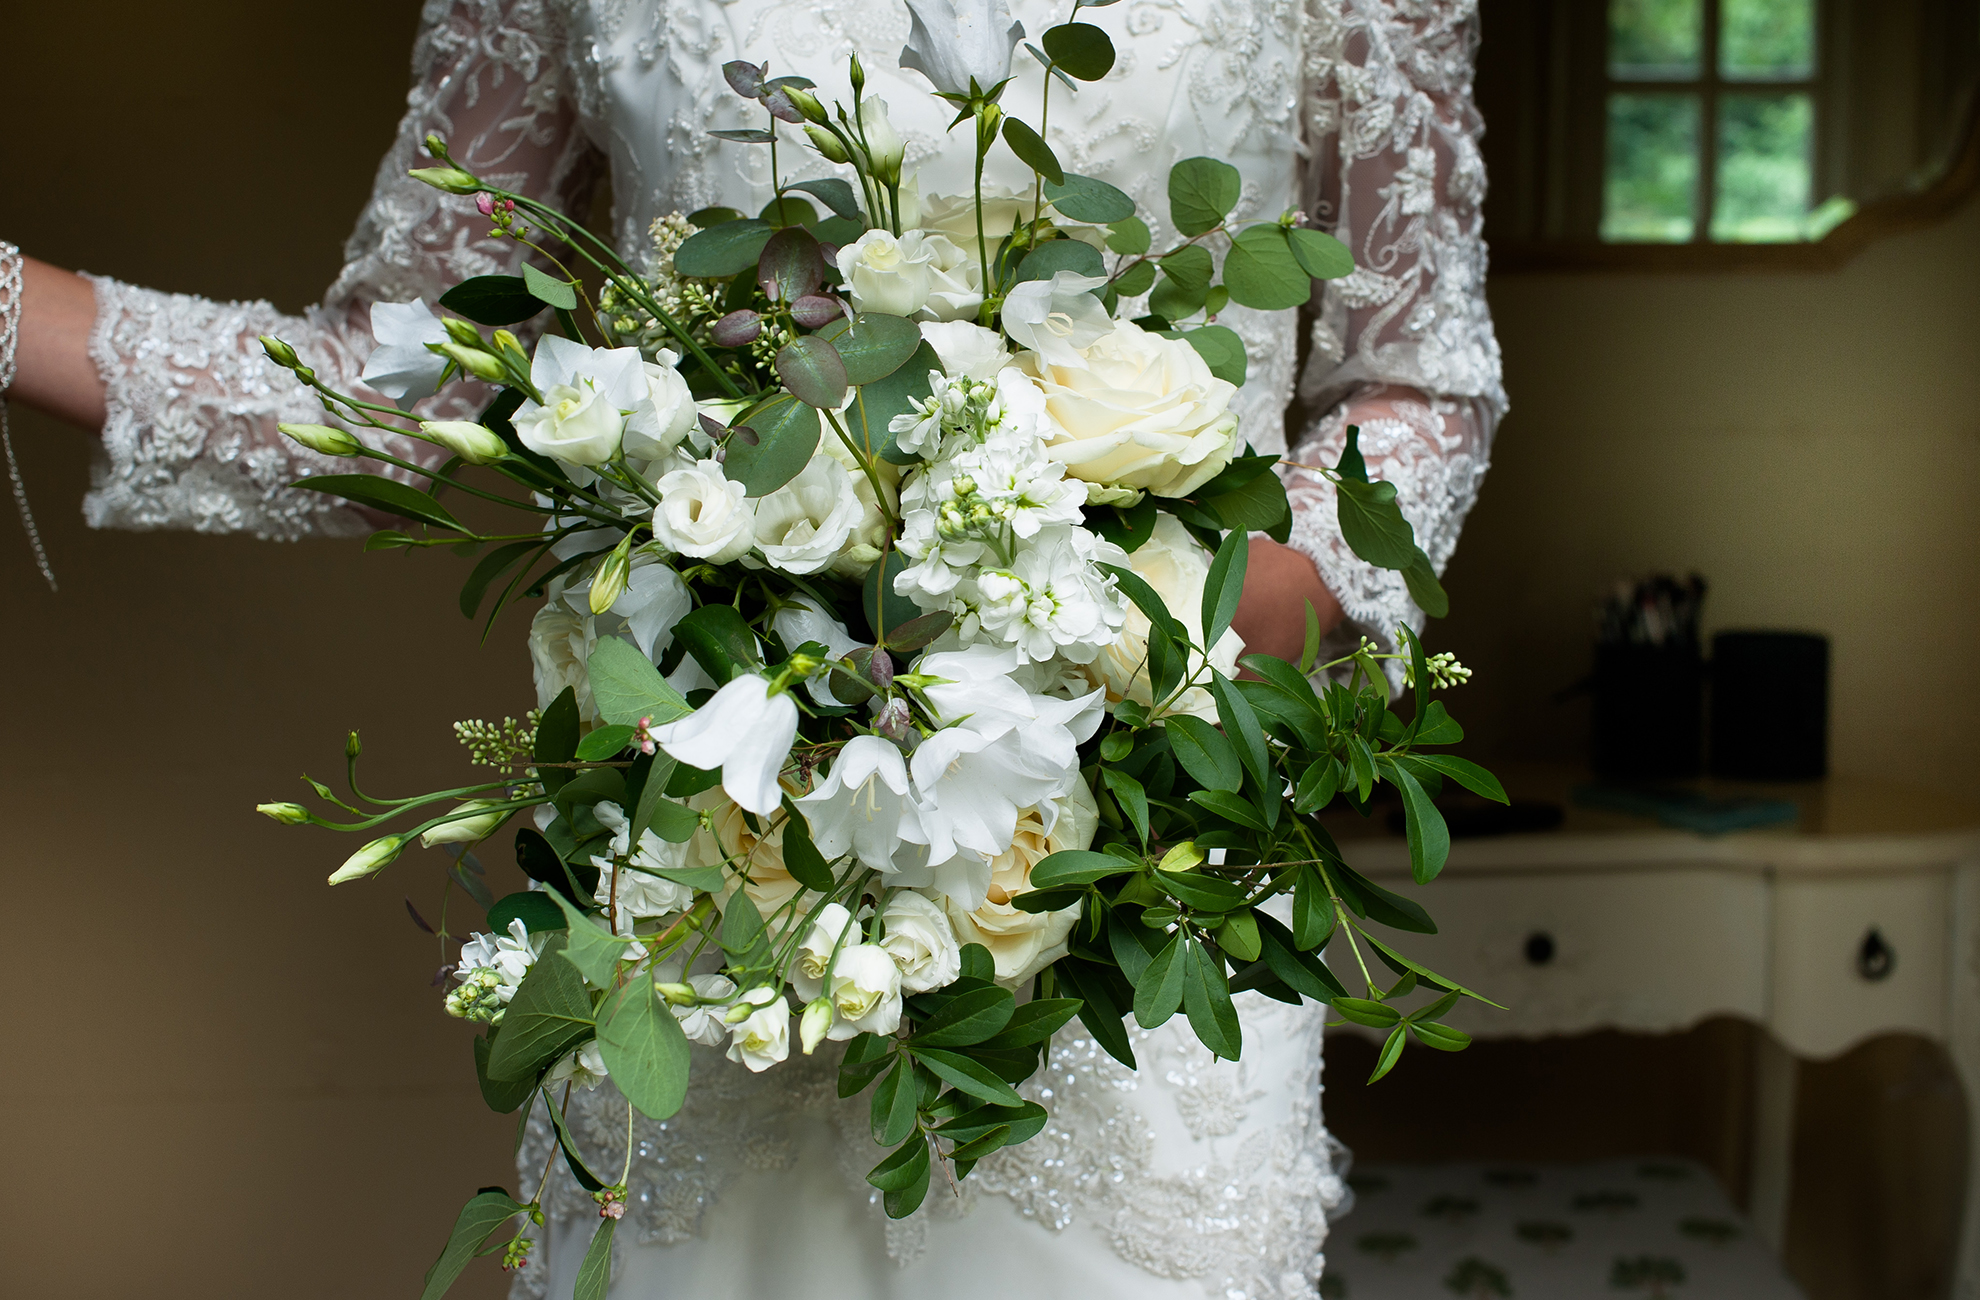 White floral bouquets surrounded by greenery are perfect for an elegant summer wedding at Combermere Abbey